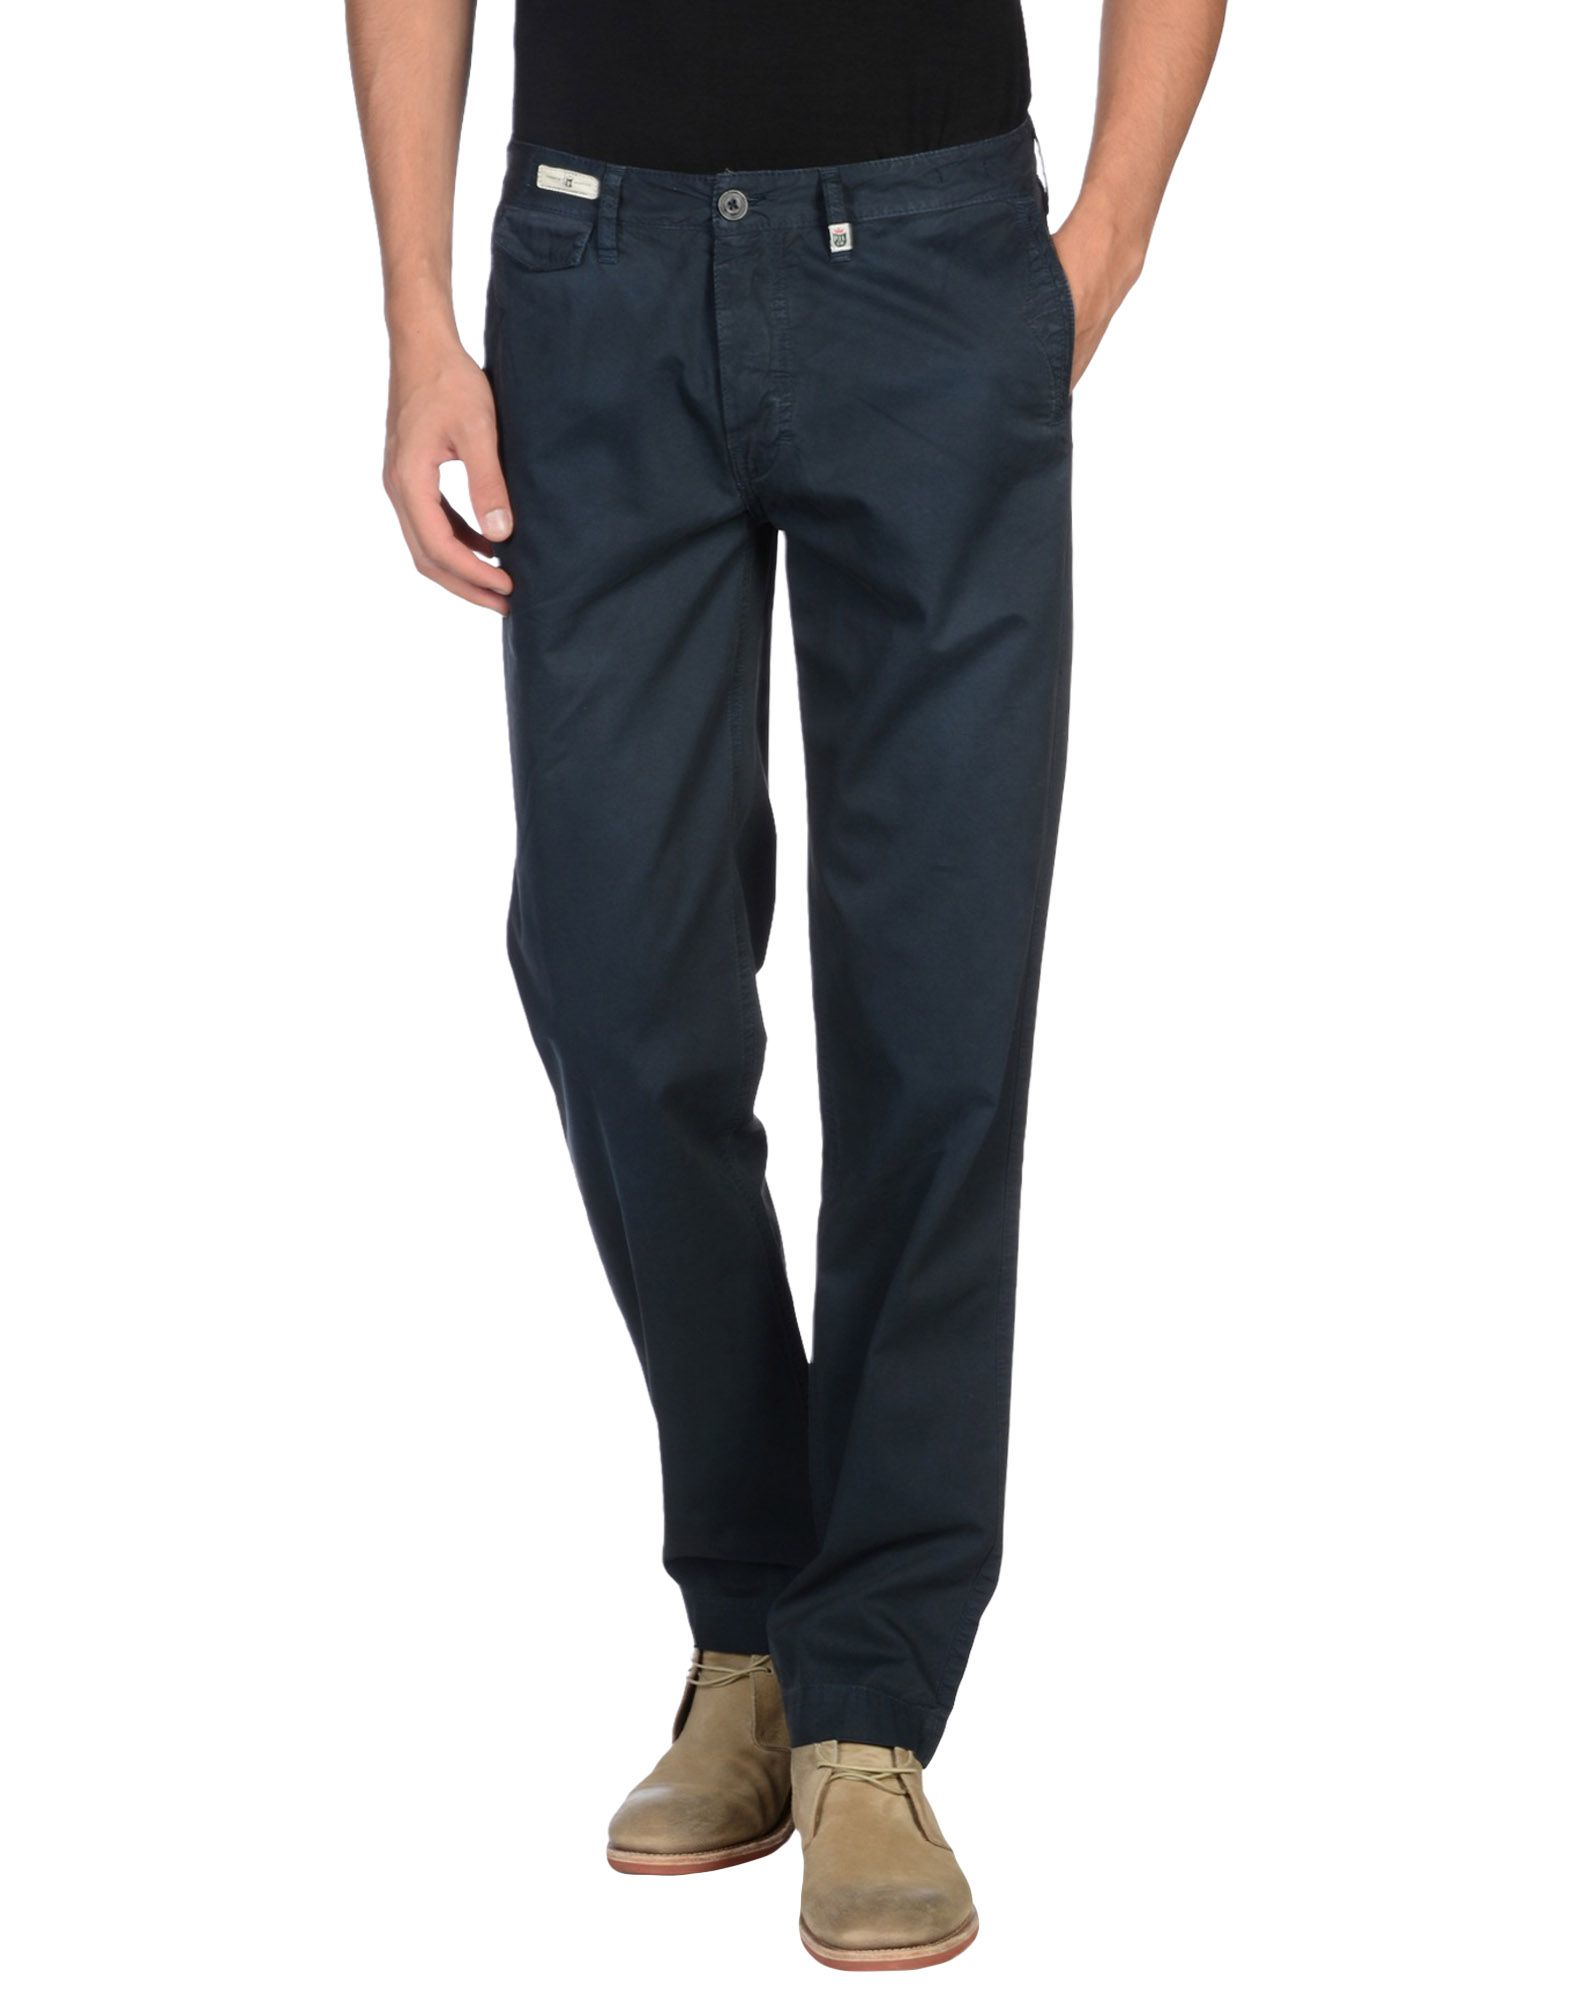 lyst pepe jeans casual trouser in blue for men. Black Bedroom Furniture Sets. Home Design Ideas